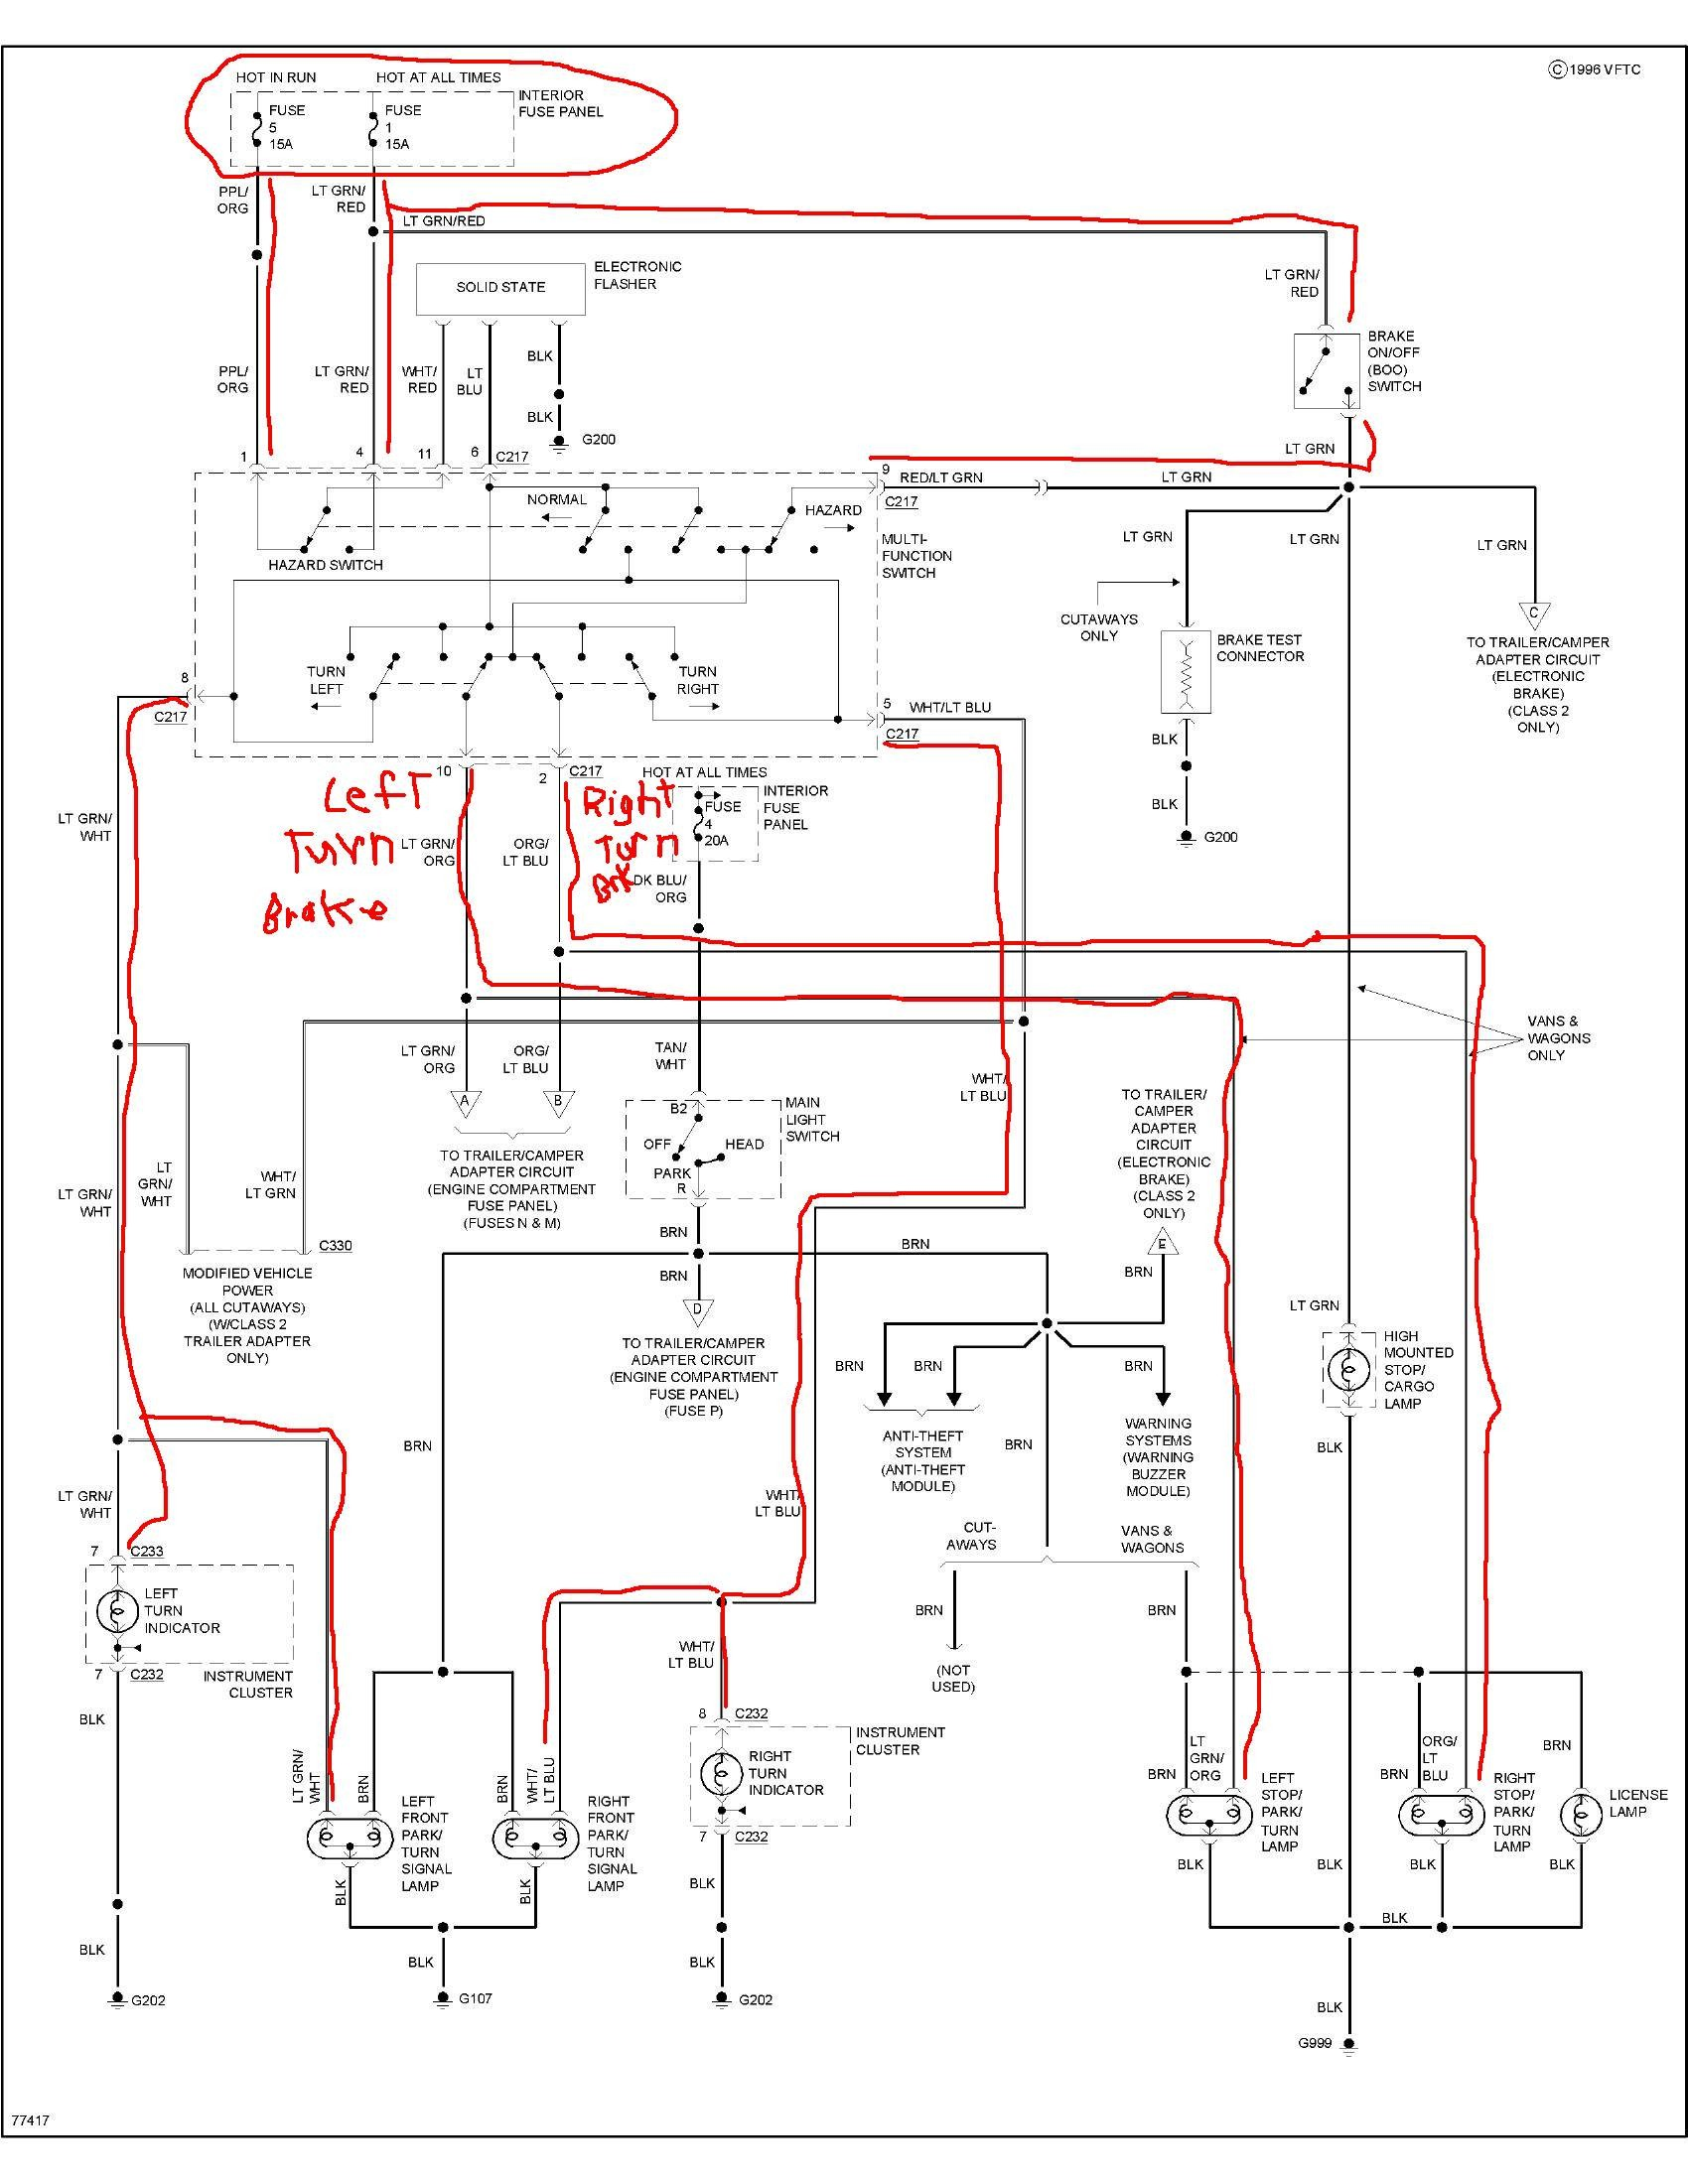 1996 Ford Taurus Engine Diagram Wiring Harness Series 1 Land 96 Rover Discovery E 350 Diagrams Of